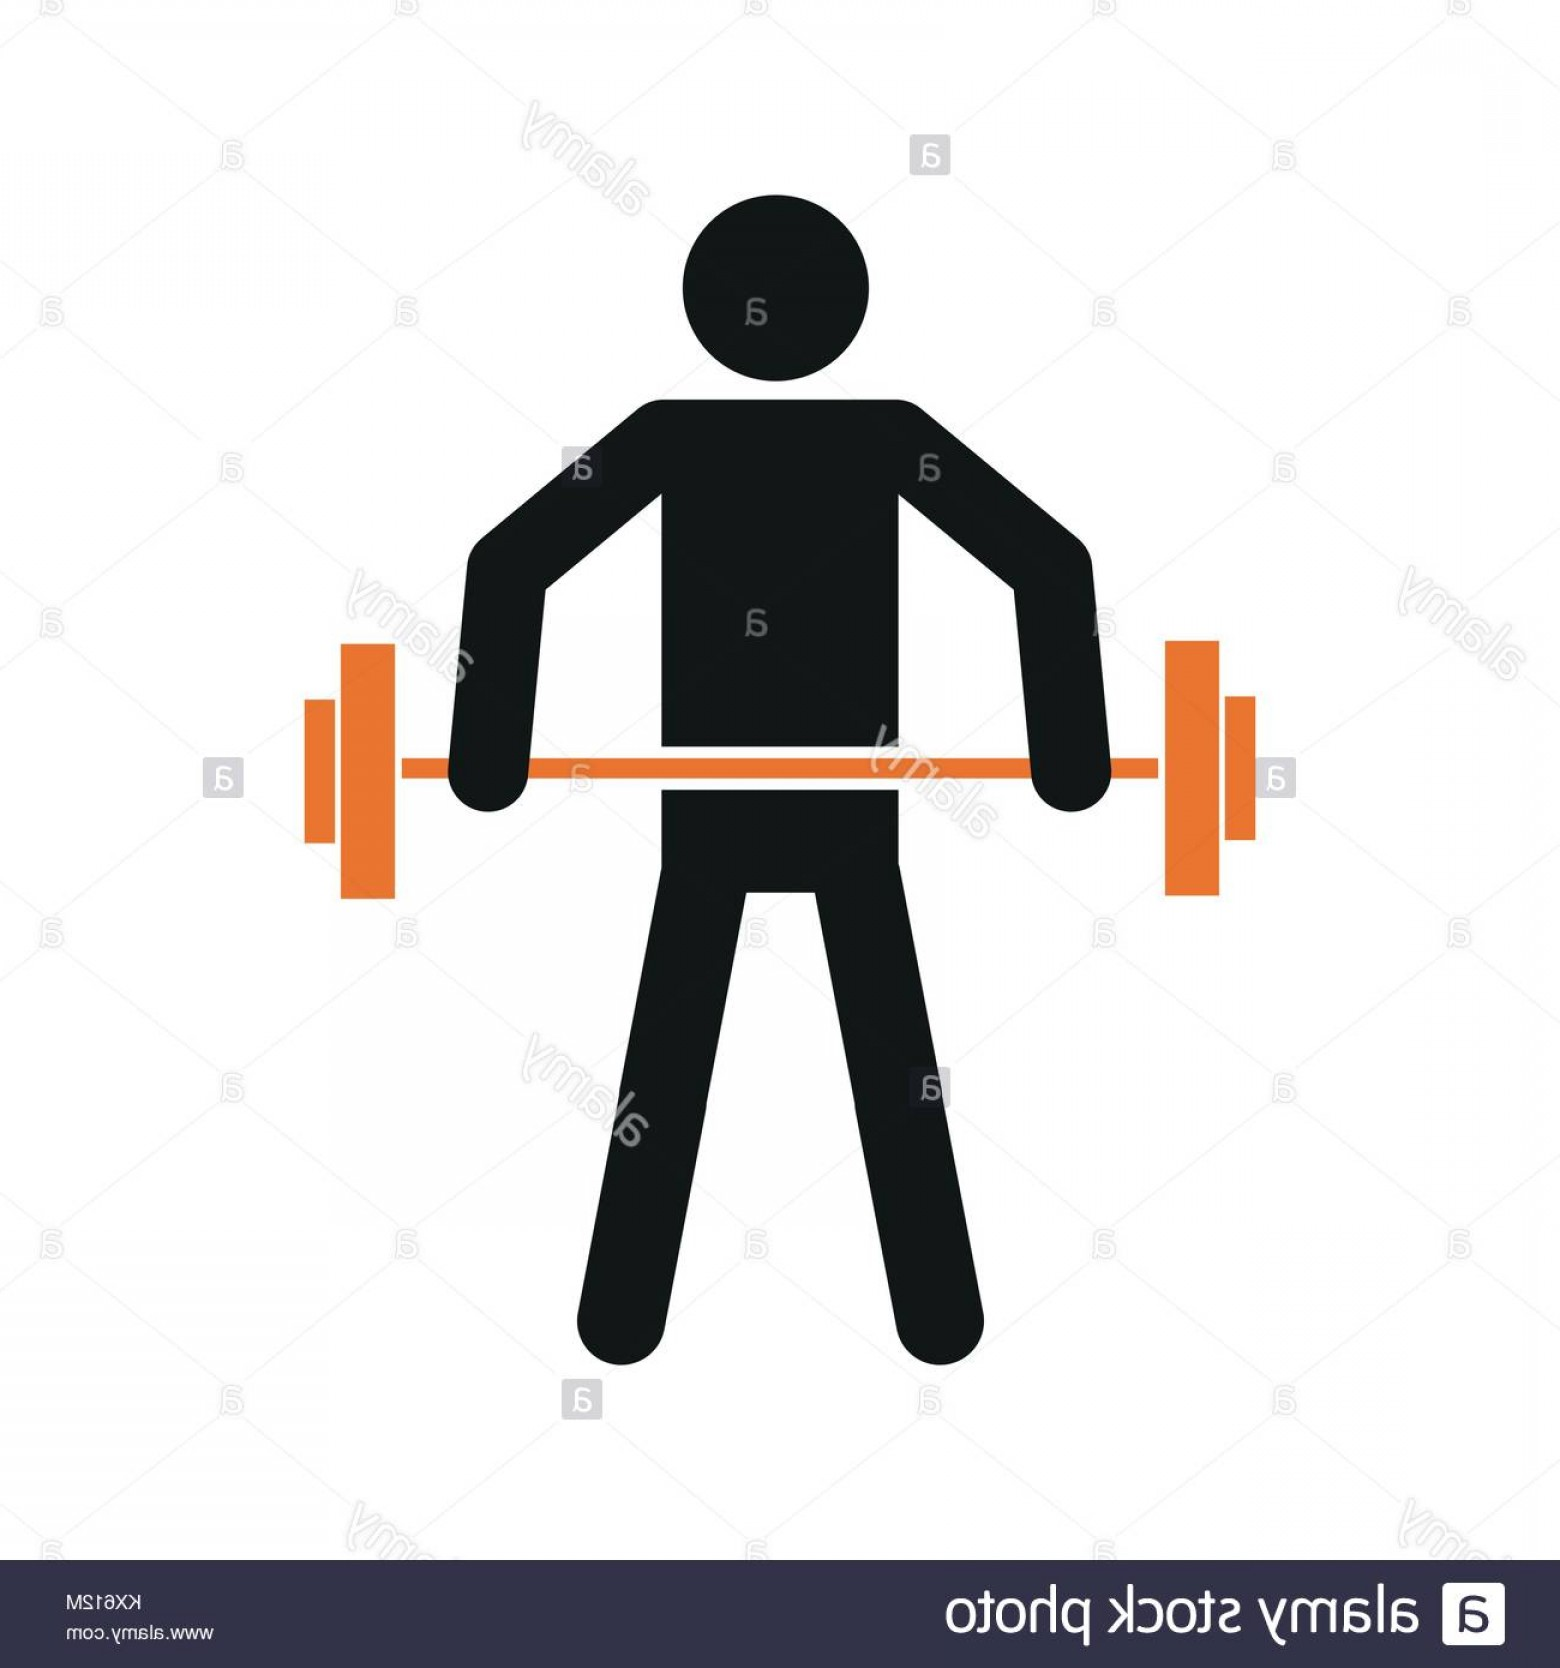 Weight Lifting Vector Graphics: Stock Photo Simple Weightlifting Sport Figure Symbol Vector Illustration Graphic